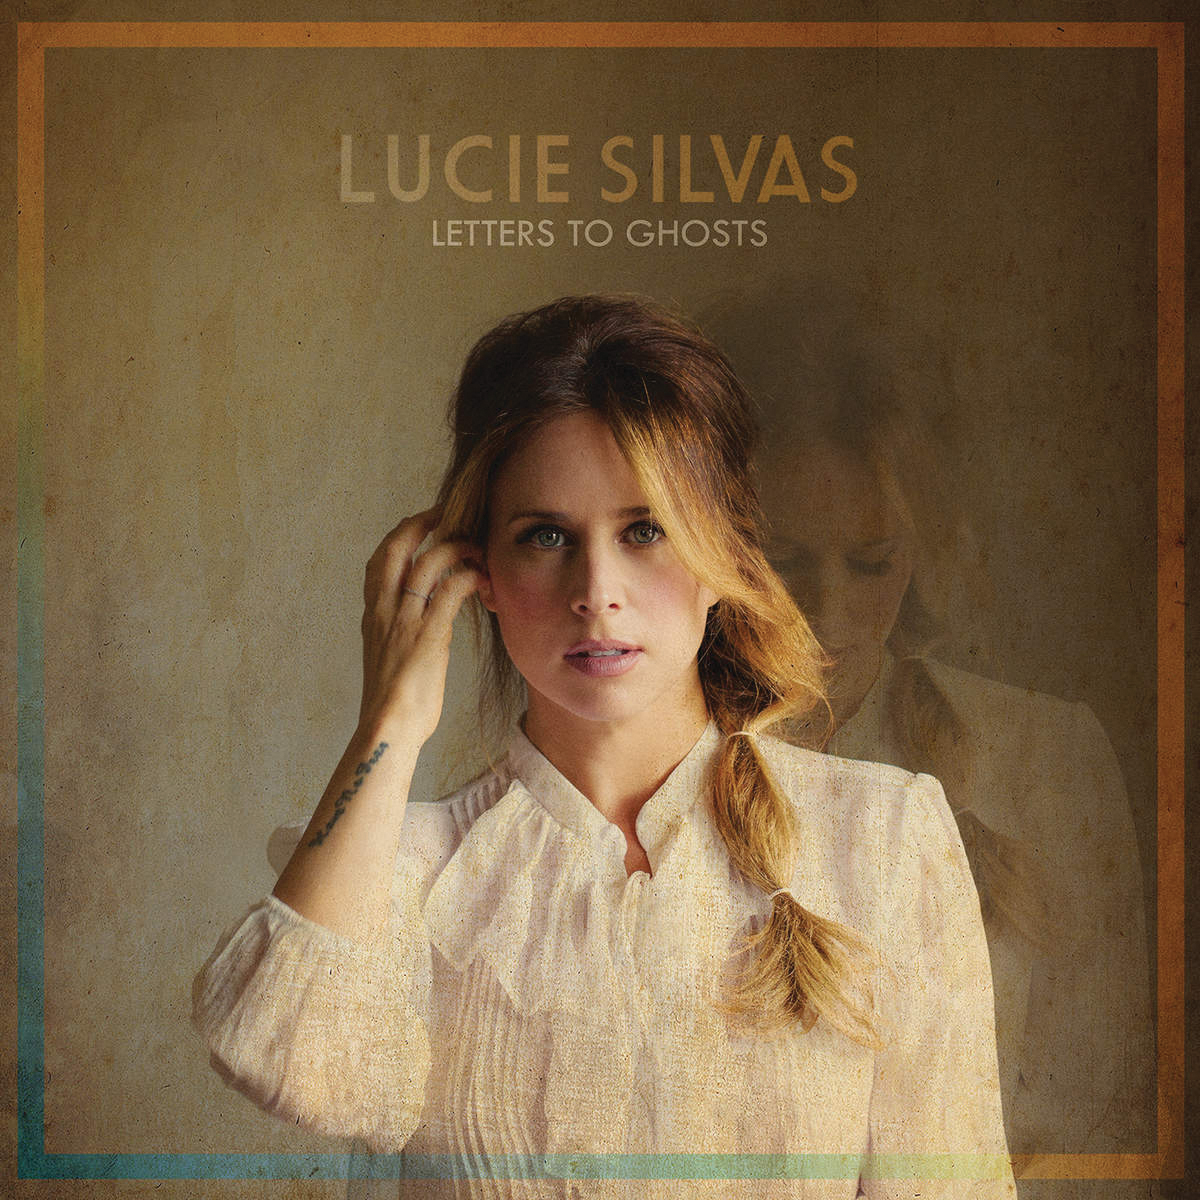 Lucie Silvas Letters to Ghosts